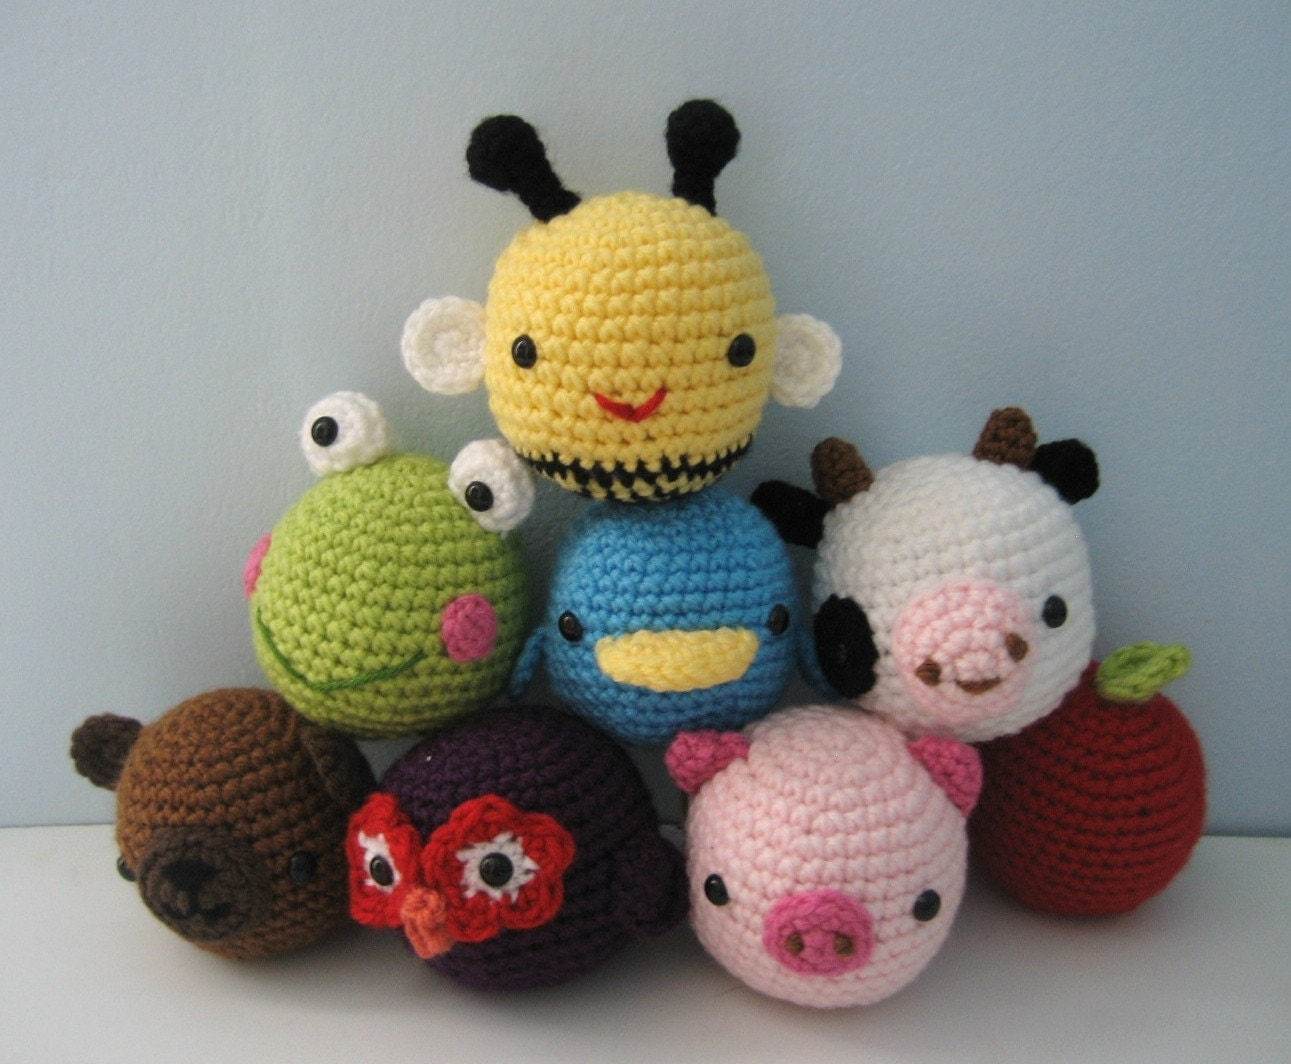 Beginner Crochet Patterns For Baby Toys : Amigurumi Crochet Animal Toys for Baby Pattern Digital